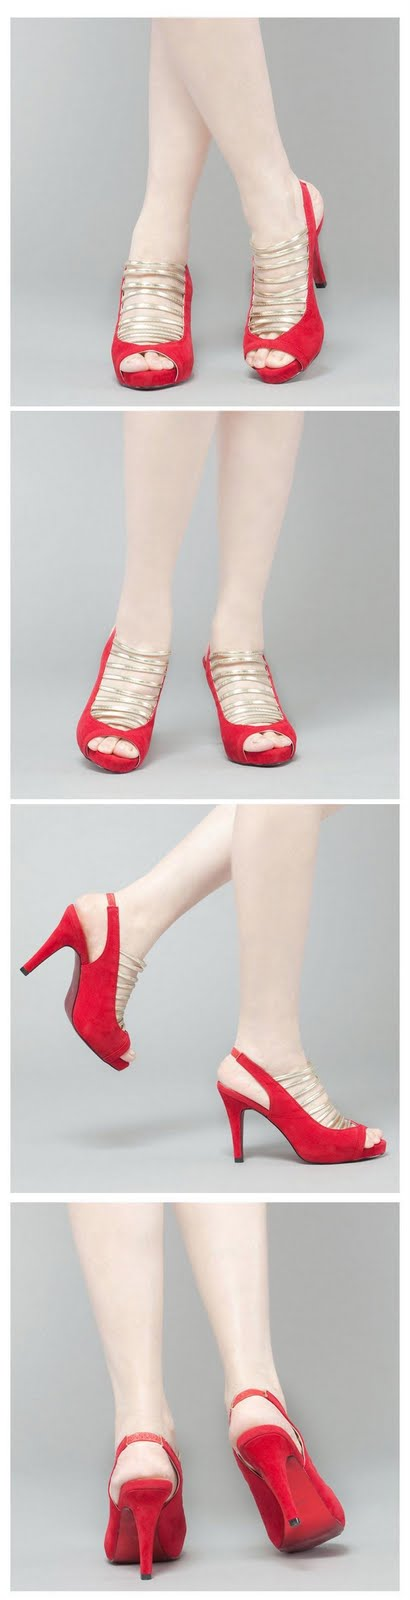 Hot Red Shoes For Spring Parties